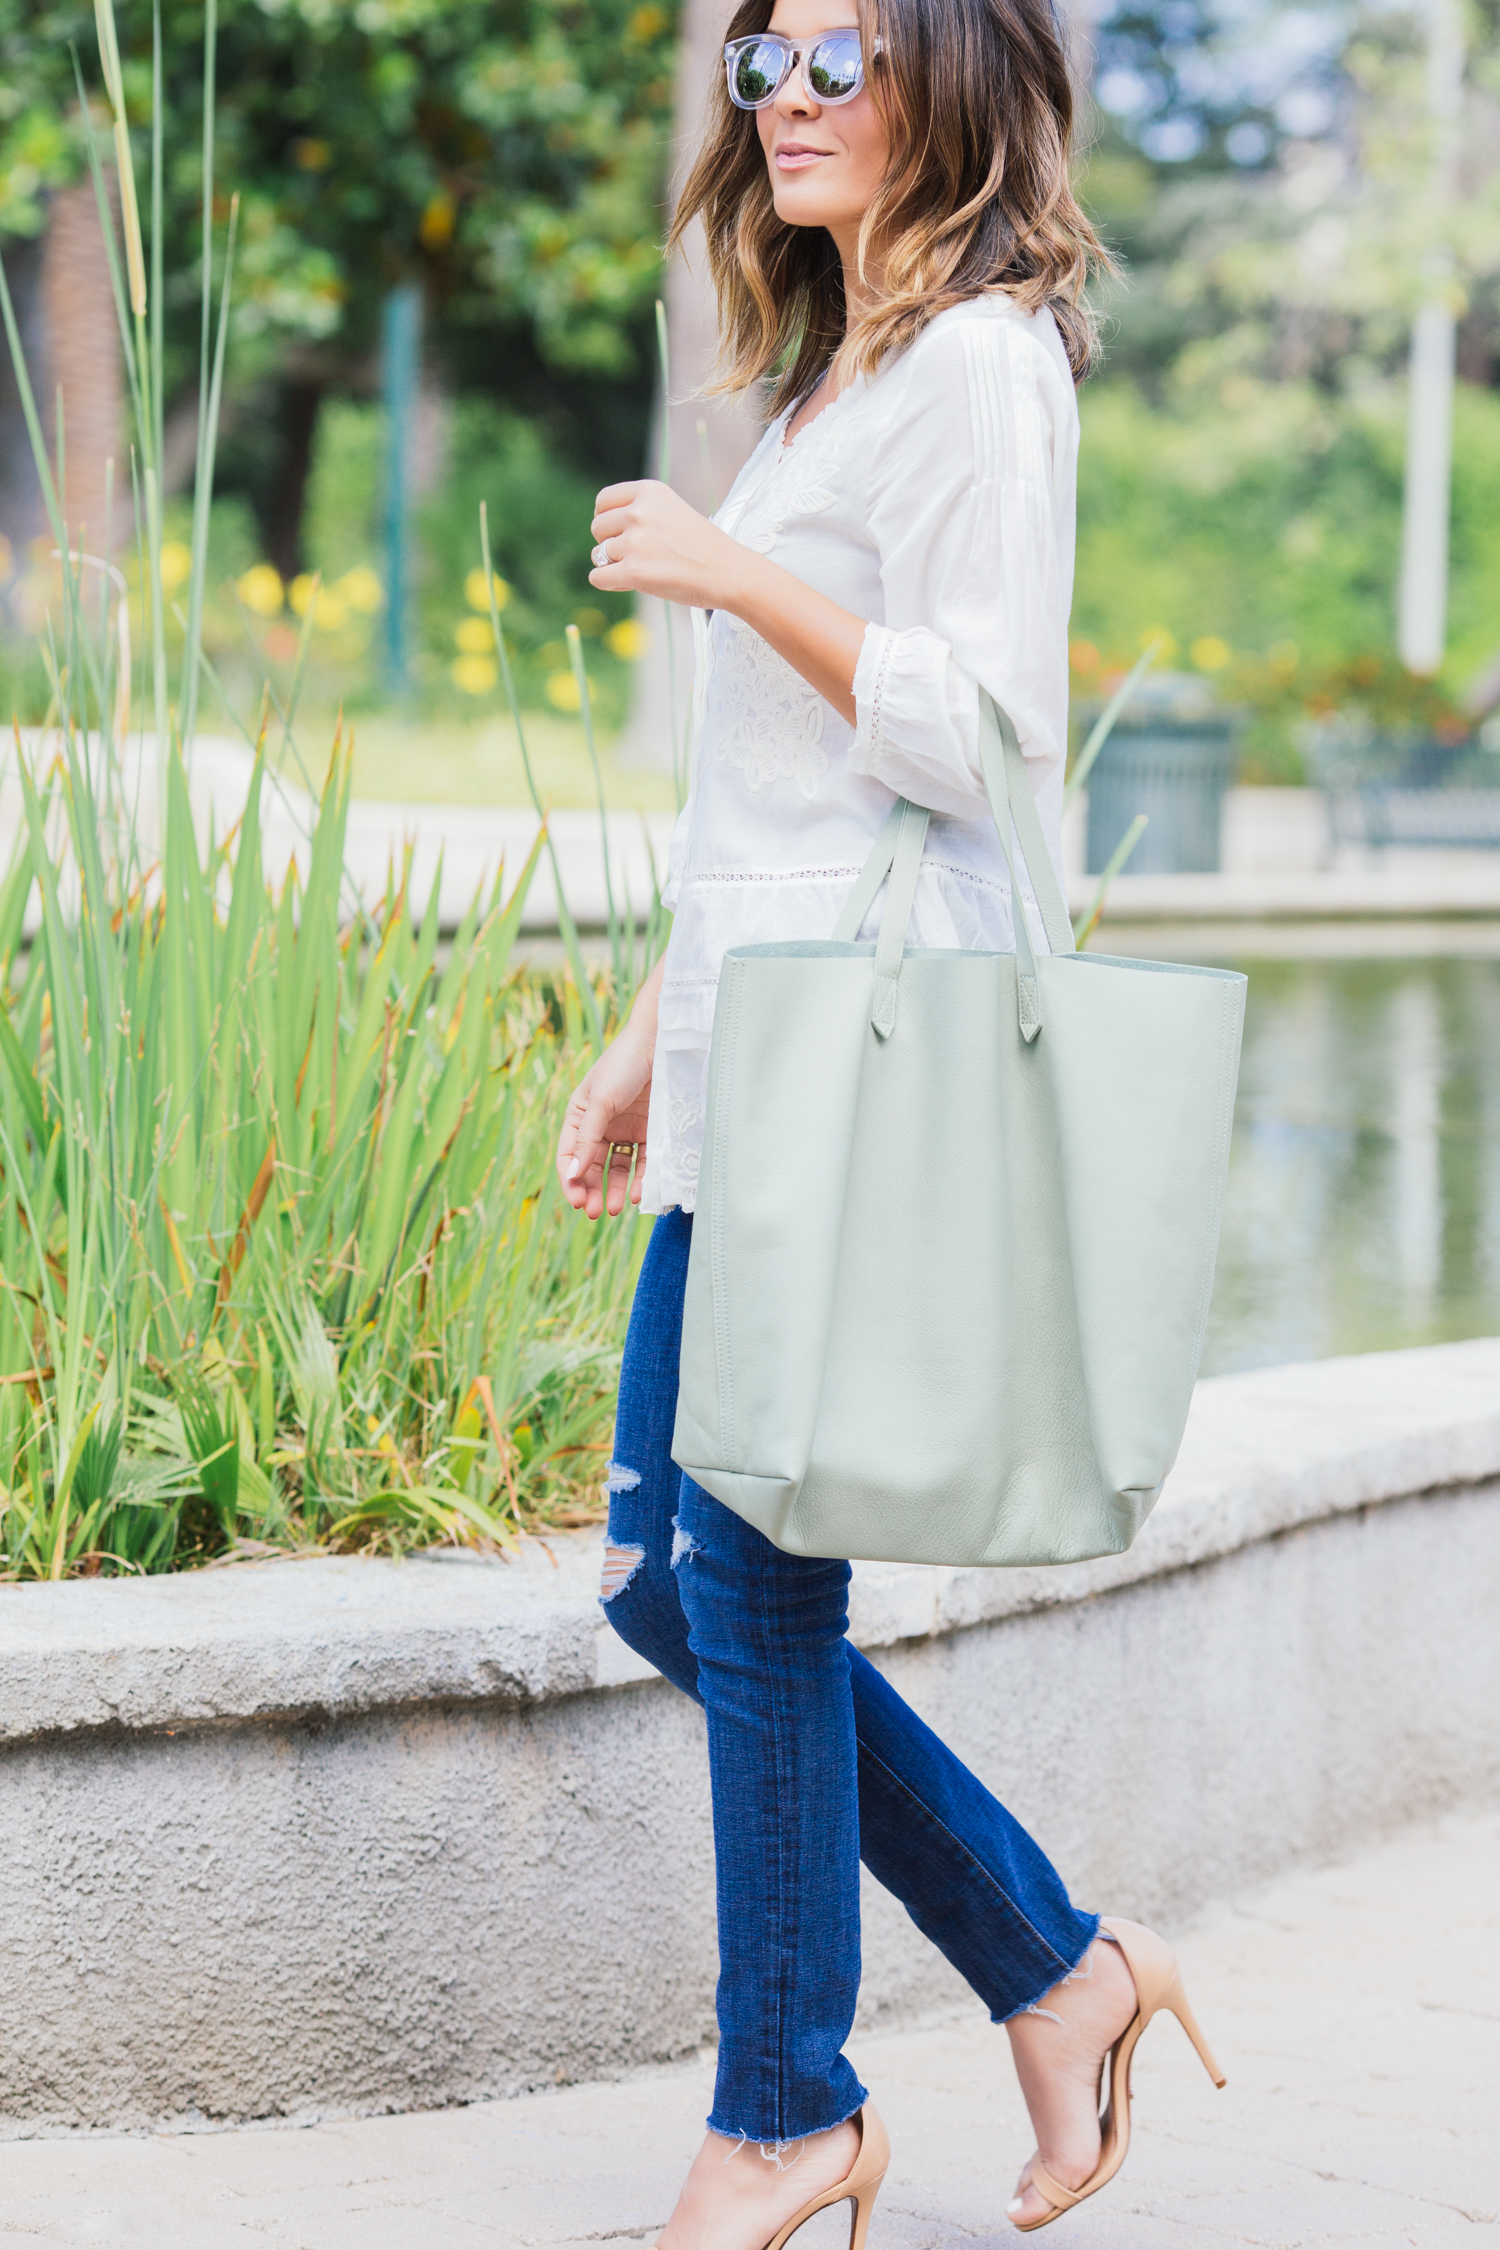 madewell transport tote and velvet top